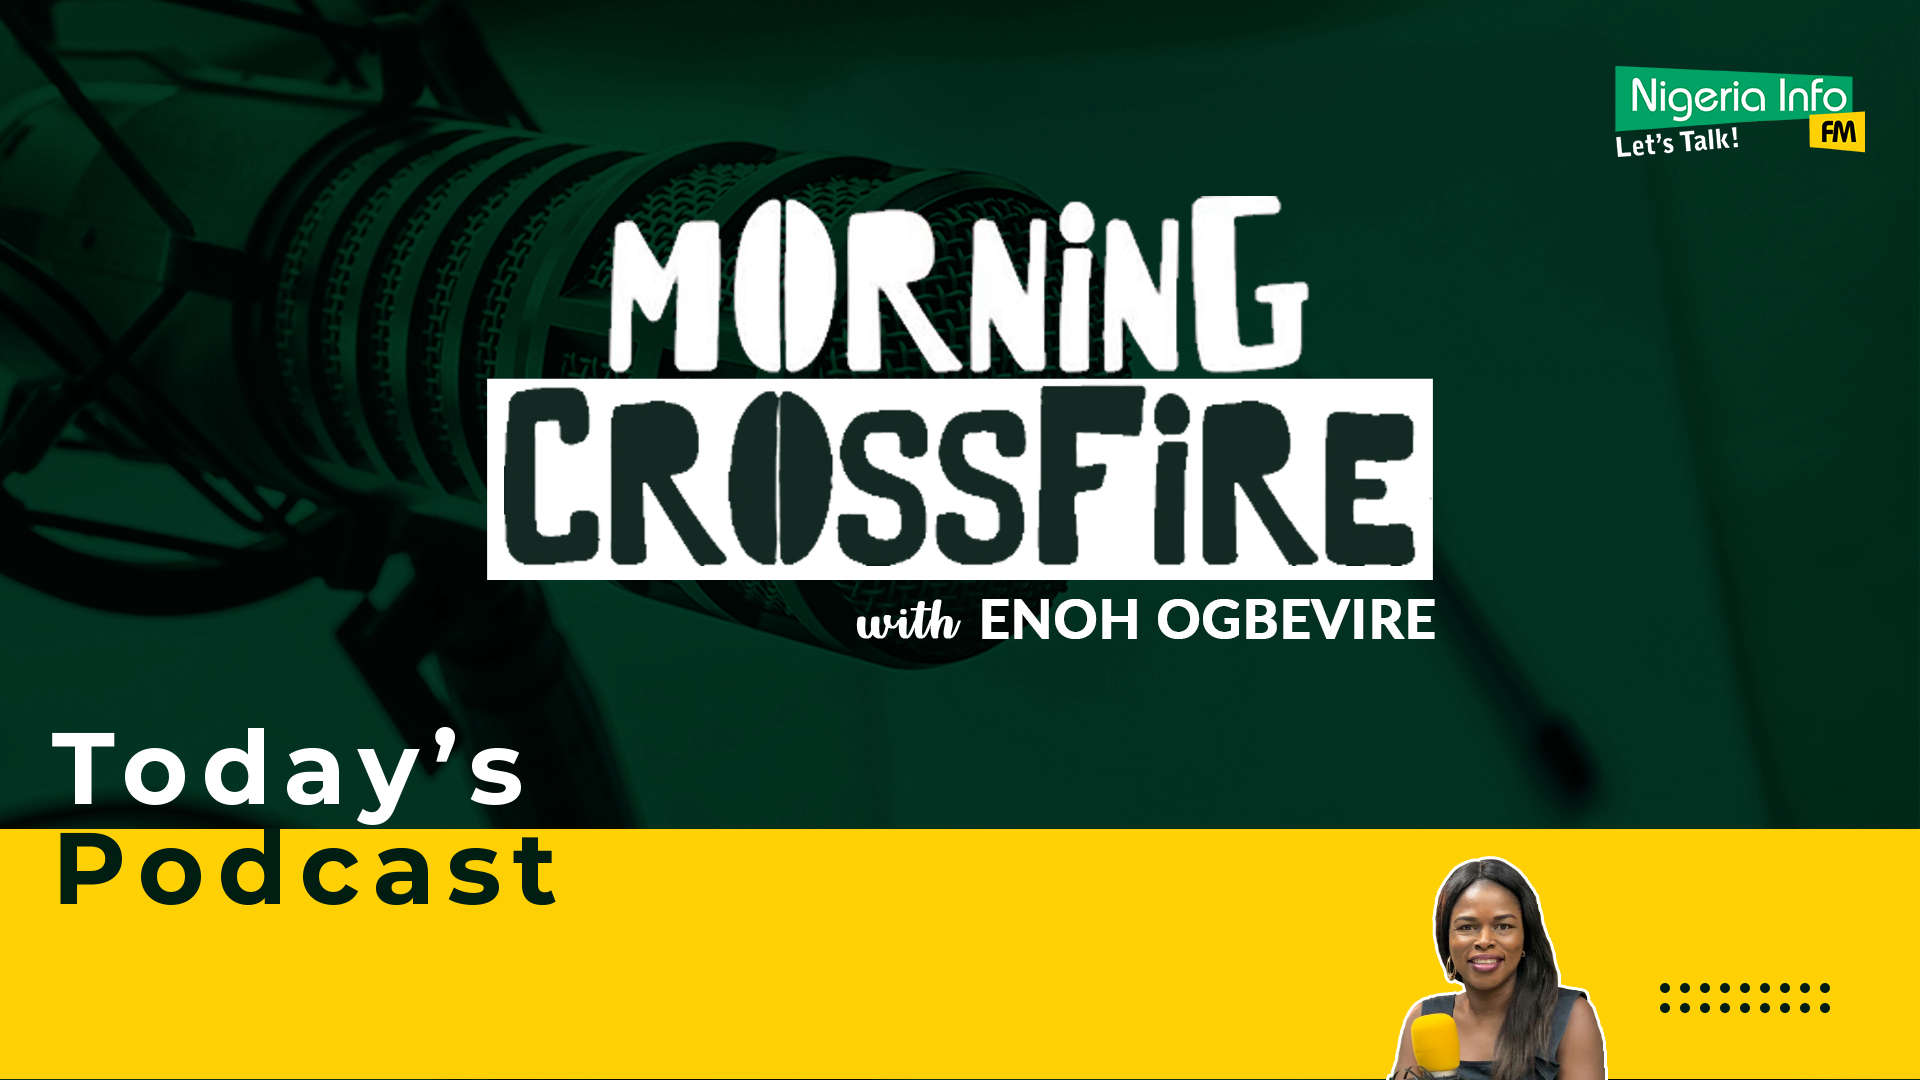 Morning Crossfire with Enoh